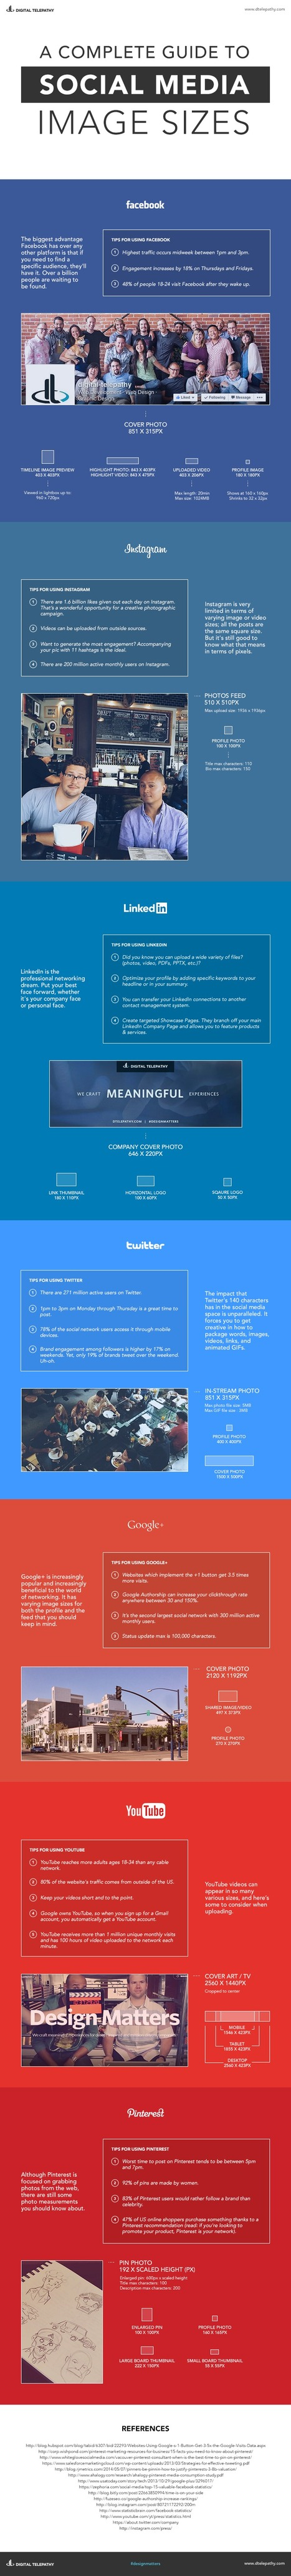 A Complete Guide to Social Media Images [INFOGRAPHIC] | Personal Branding and Professional networks - @TOOLS_BOX_INC @TOOLS_BOX_EUR @TOOLS_BOX_DEV @TOOLS_BOX_FR @TOOLS_BOX_FR @P_TREBAUL @Best_OfTweets | Scoop.it